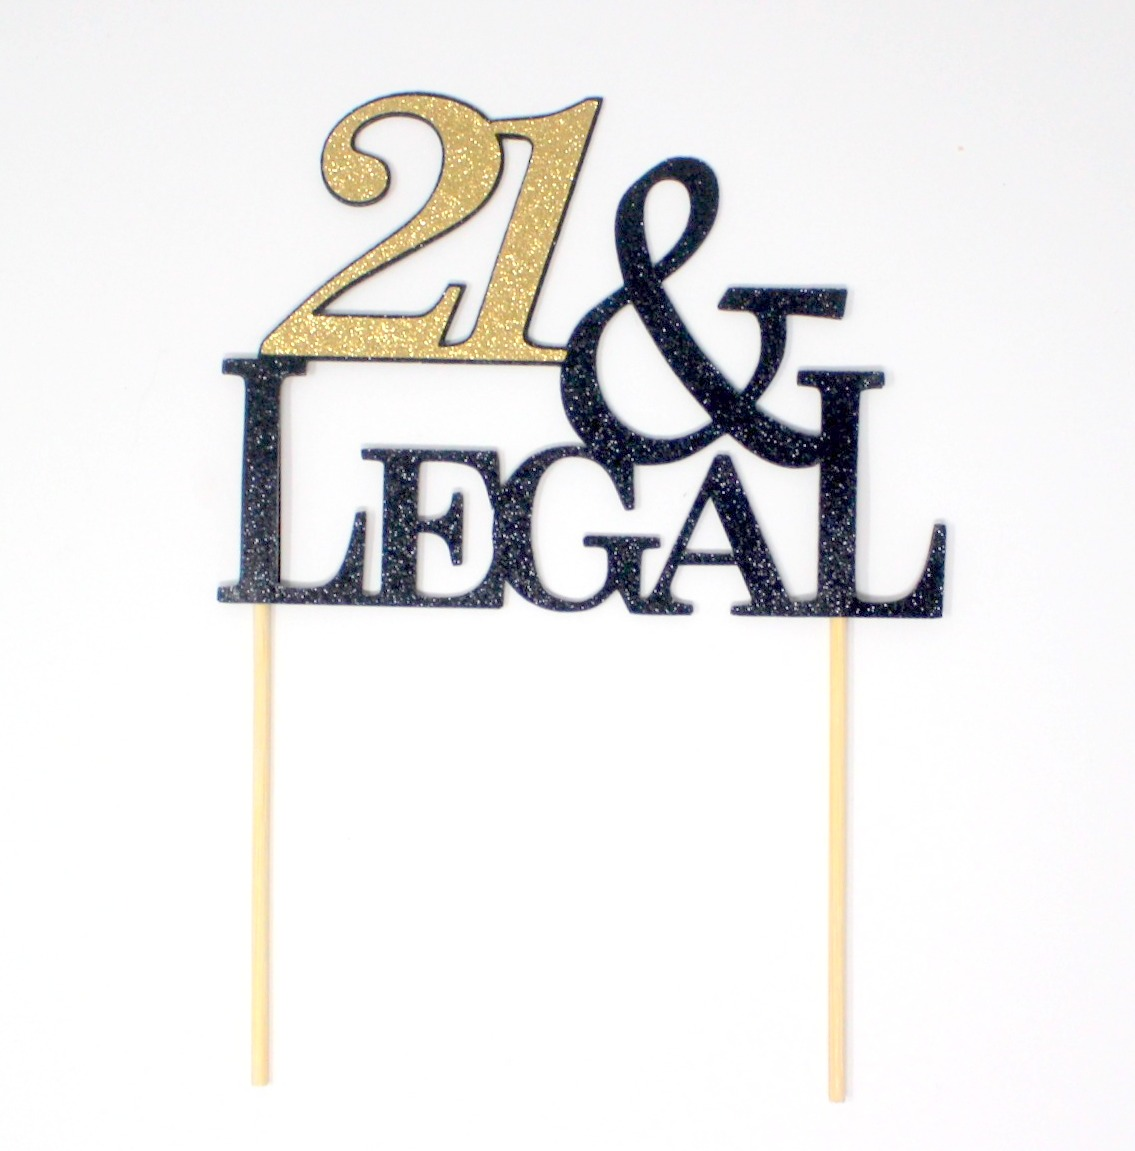 All About Details 21 & Legal Cake Topper (Black & Gold),1 PC, 21st Birthday, Glitter Topper